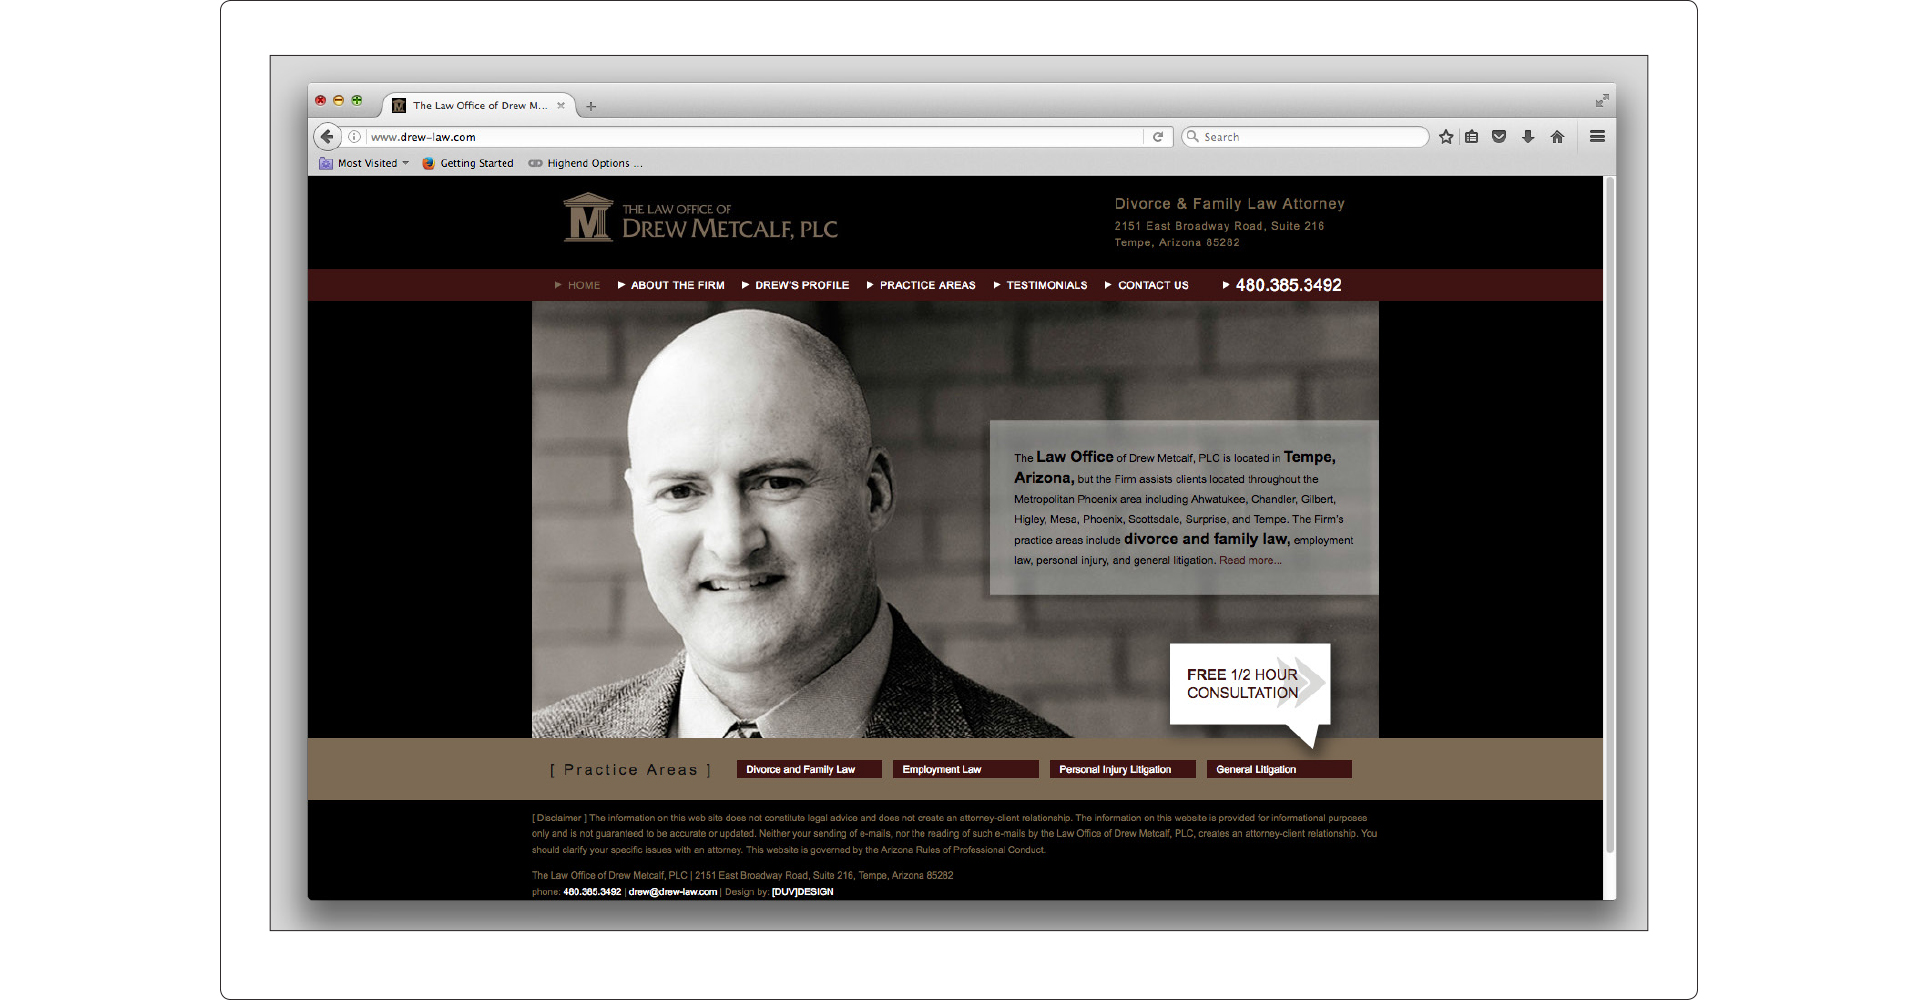 Drew Metcalf web Design